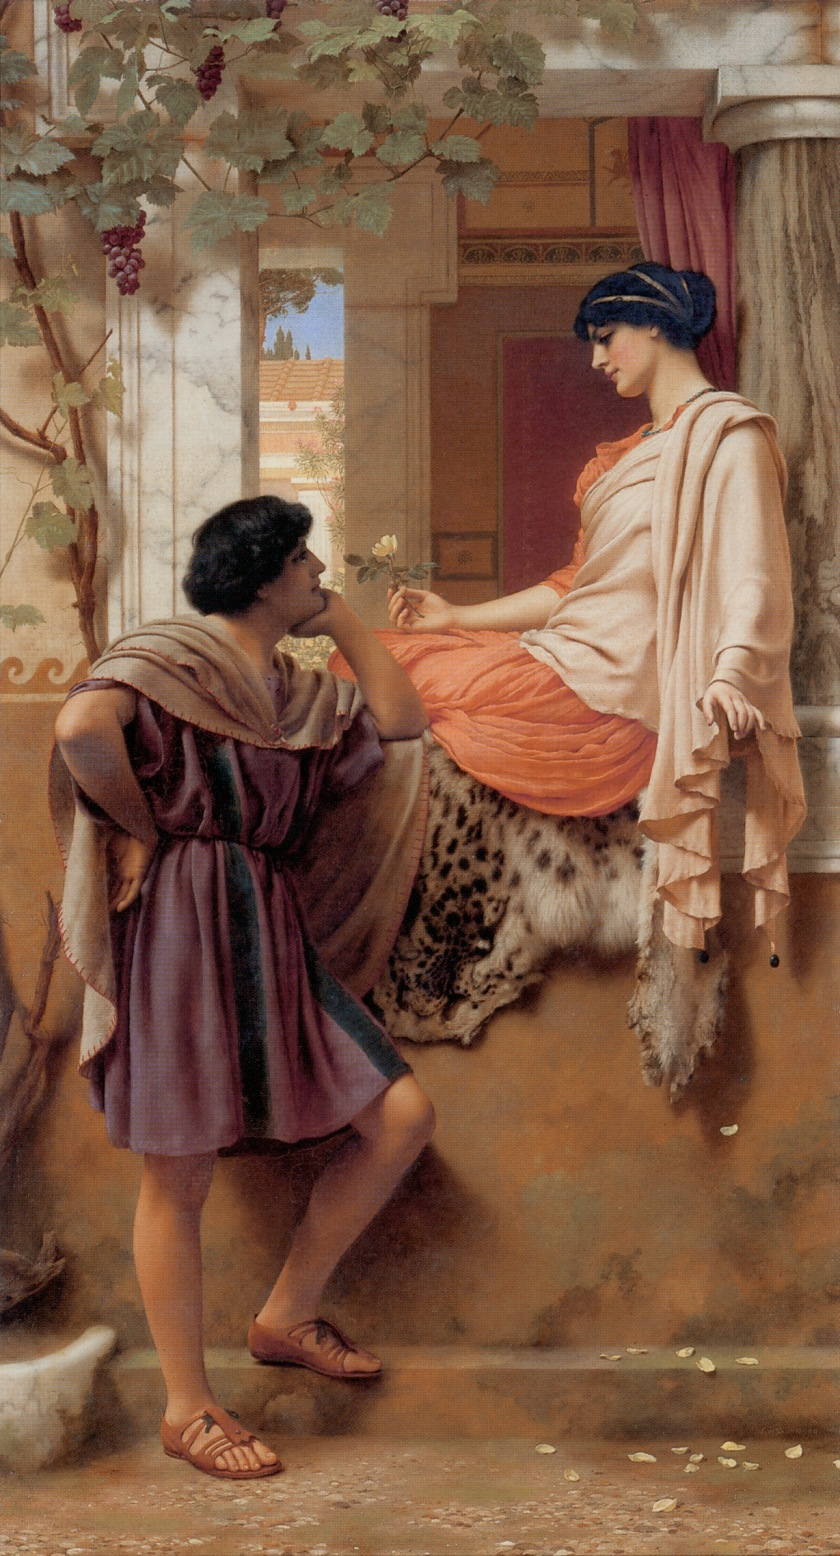 Godward: The_Old_Old_Story (1903)